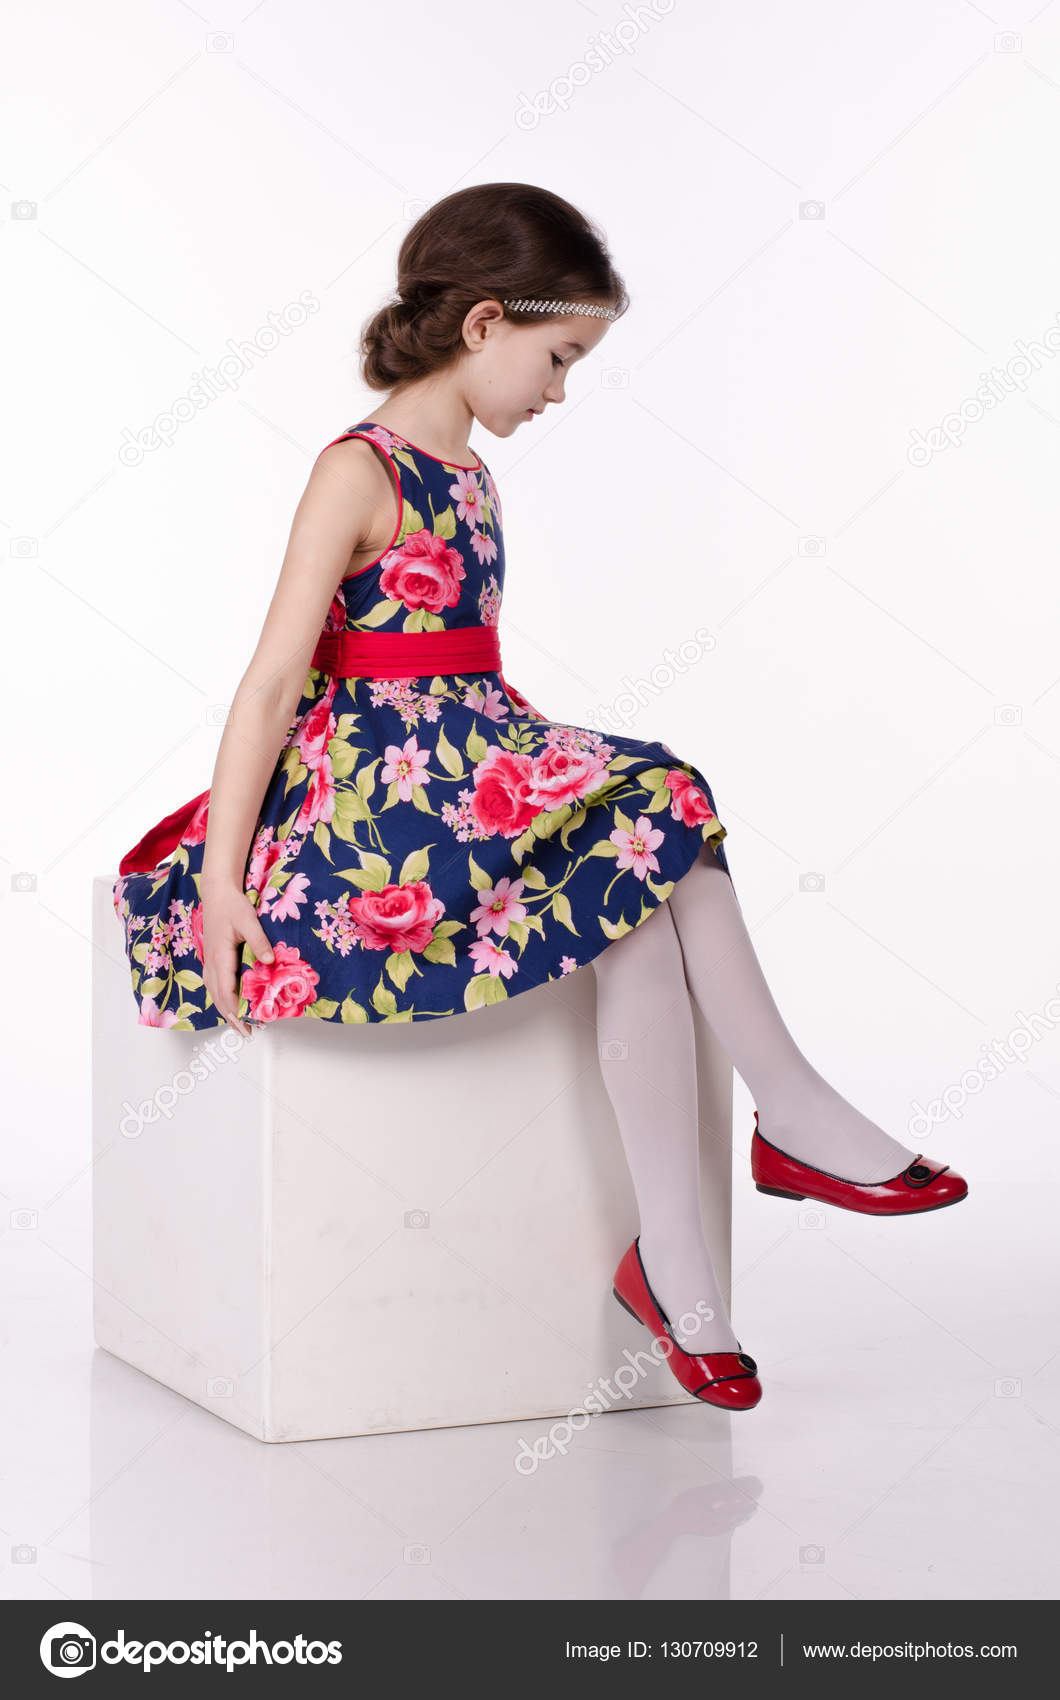 Little girl wearing dress with flowers isolated on white background. She is  sitting on the cube. Studio shot. 7